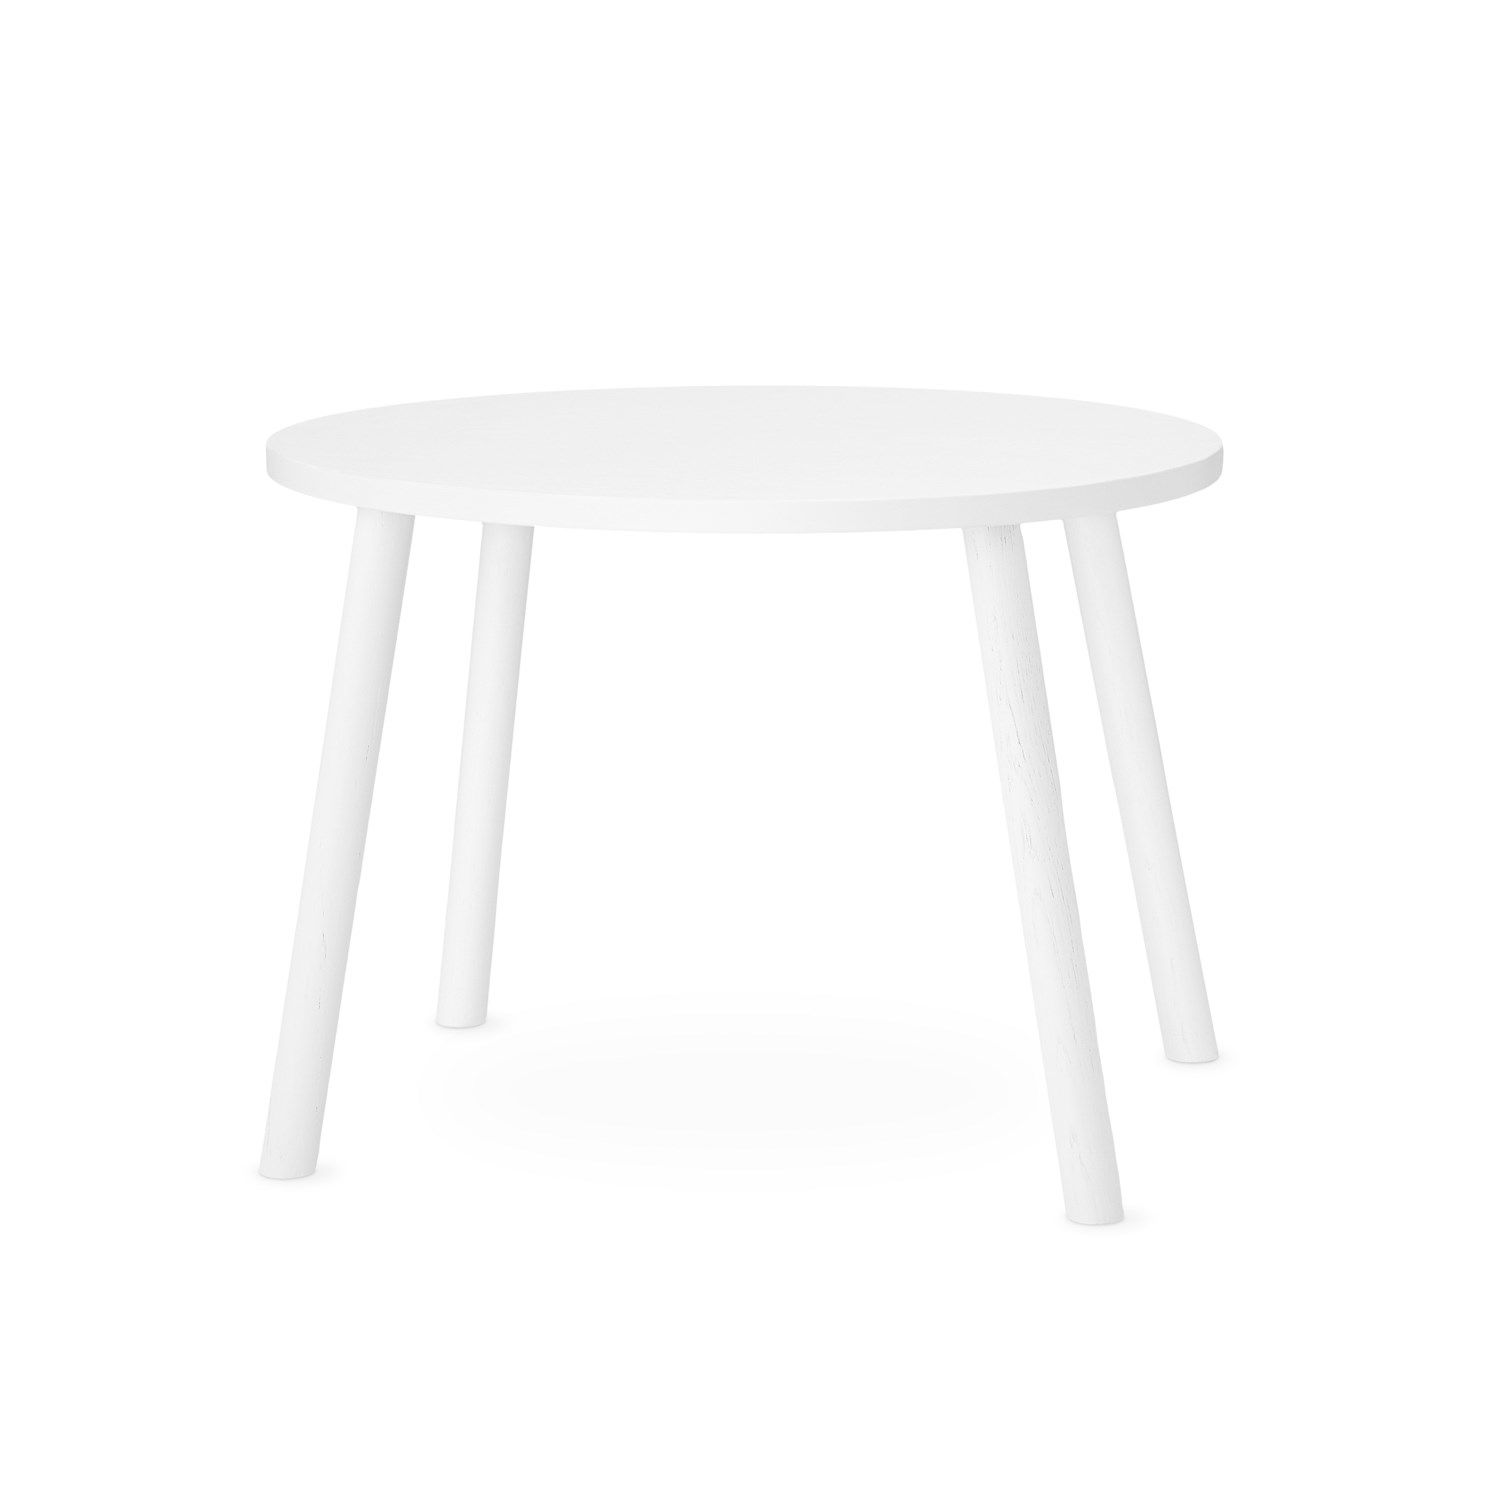 Nofred - Mouse table - Hvid